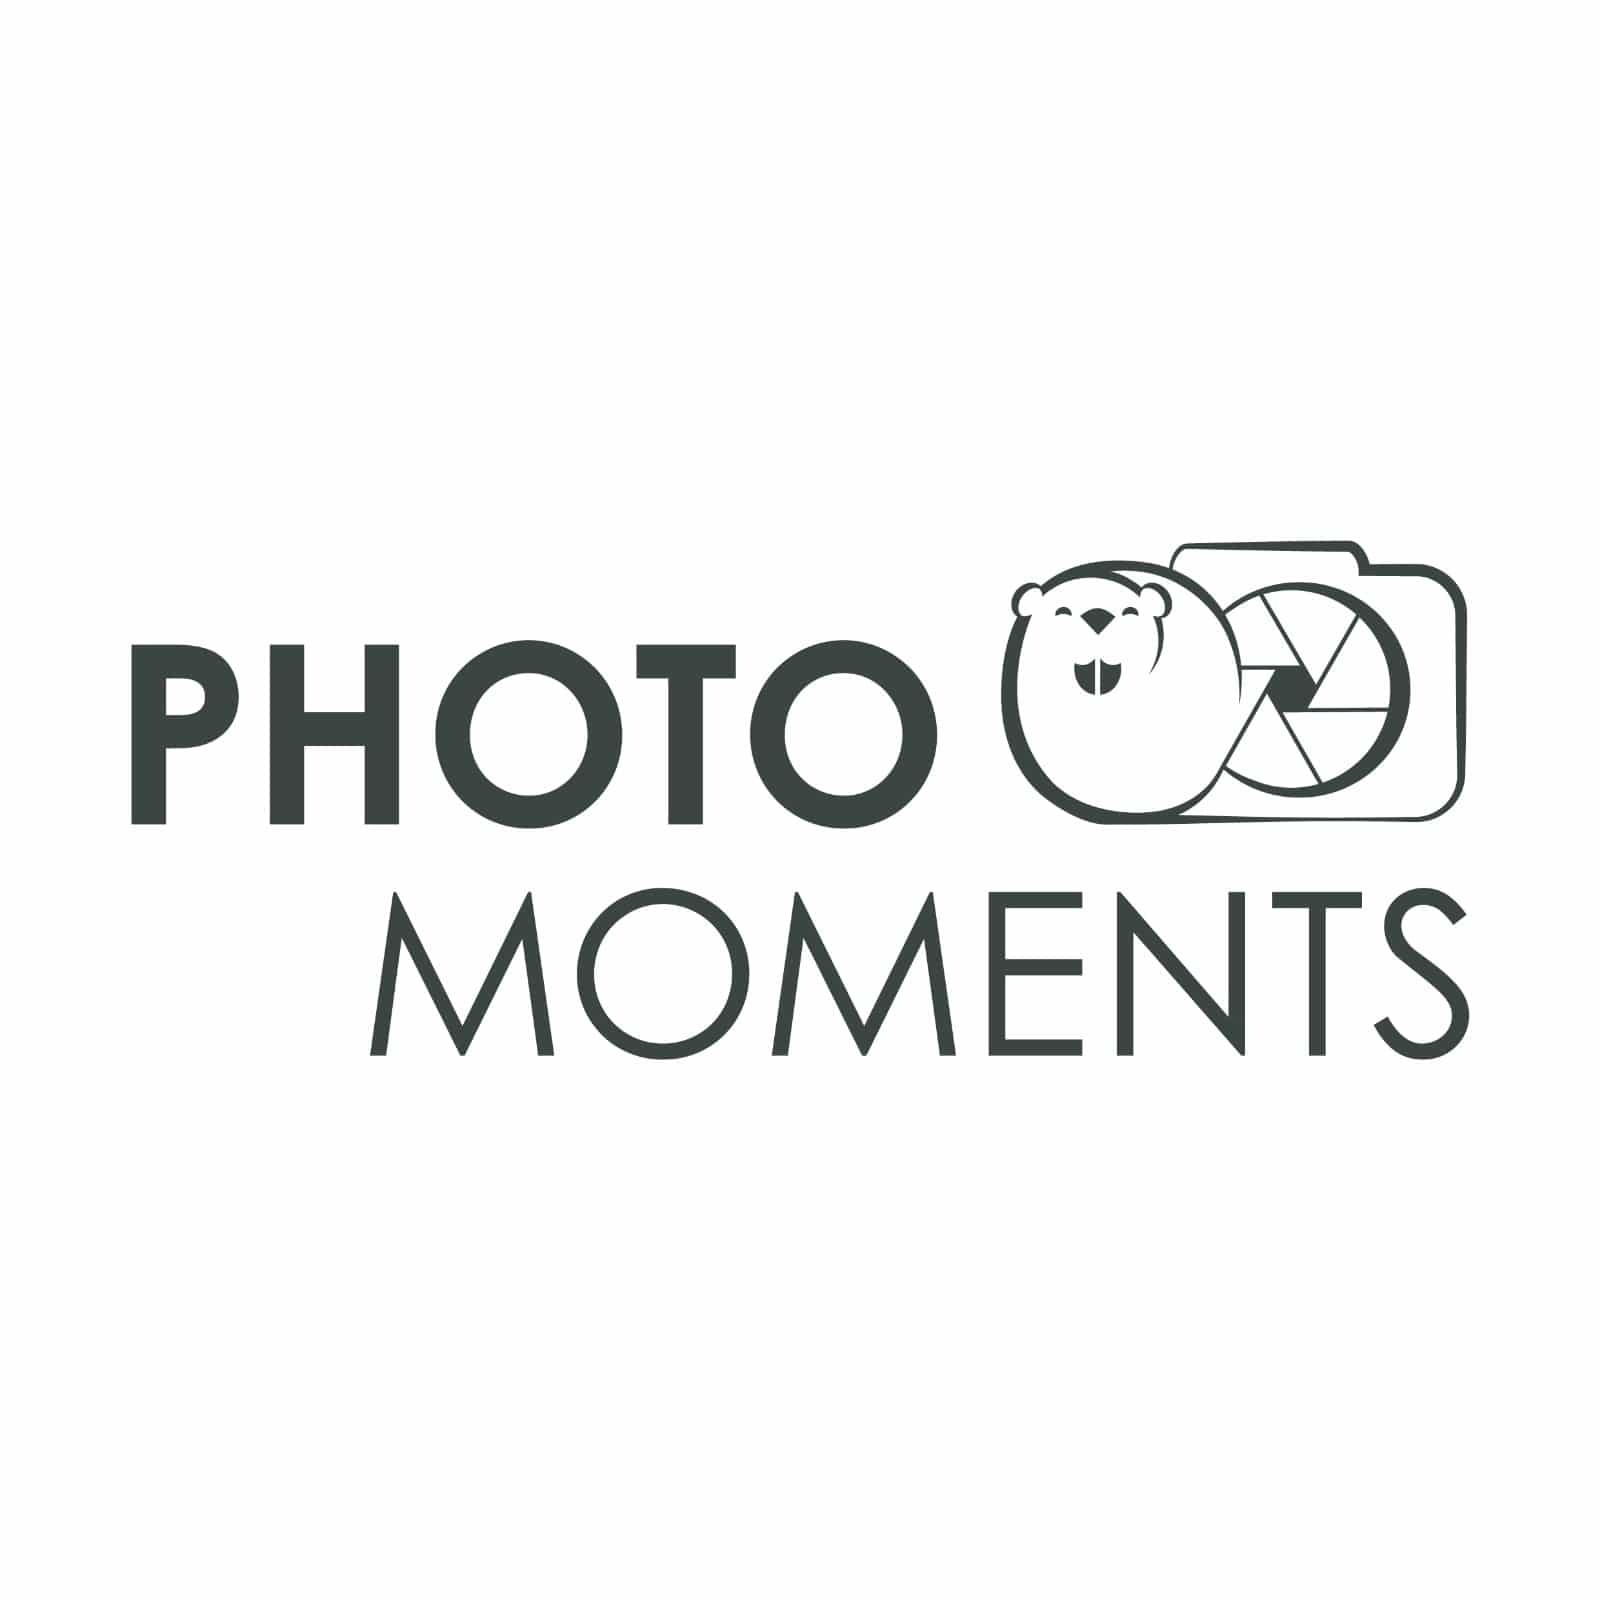 logo photo moments